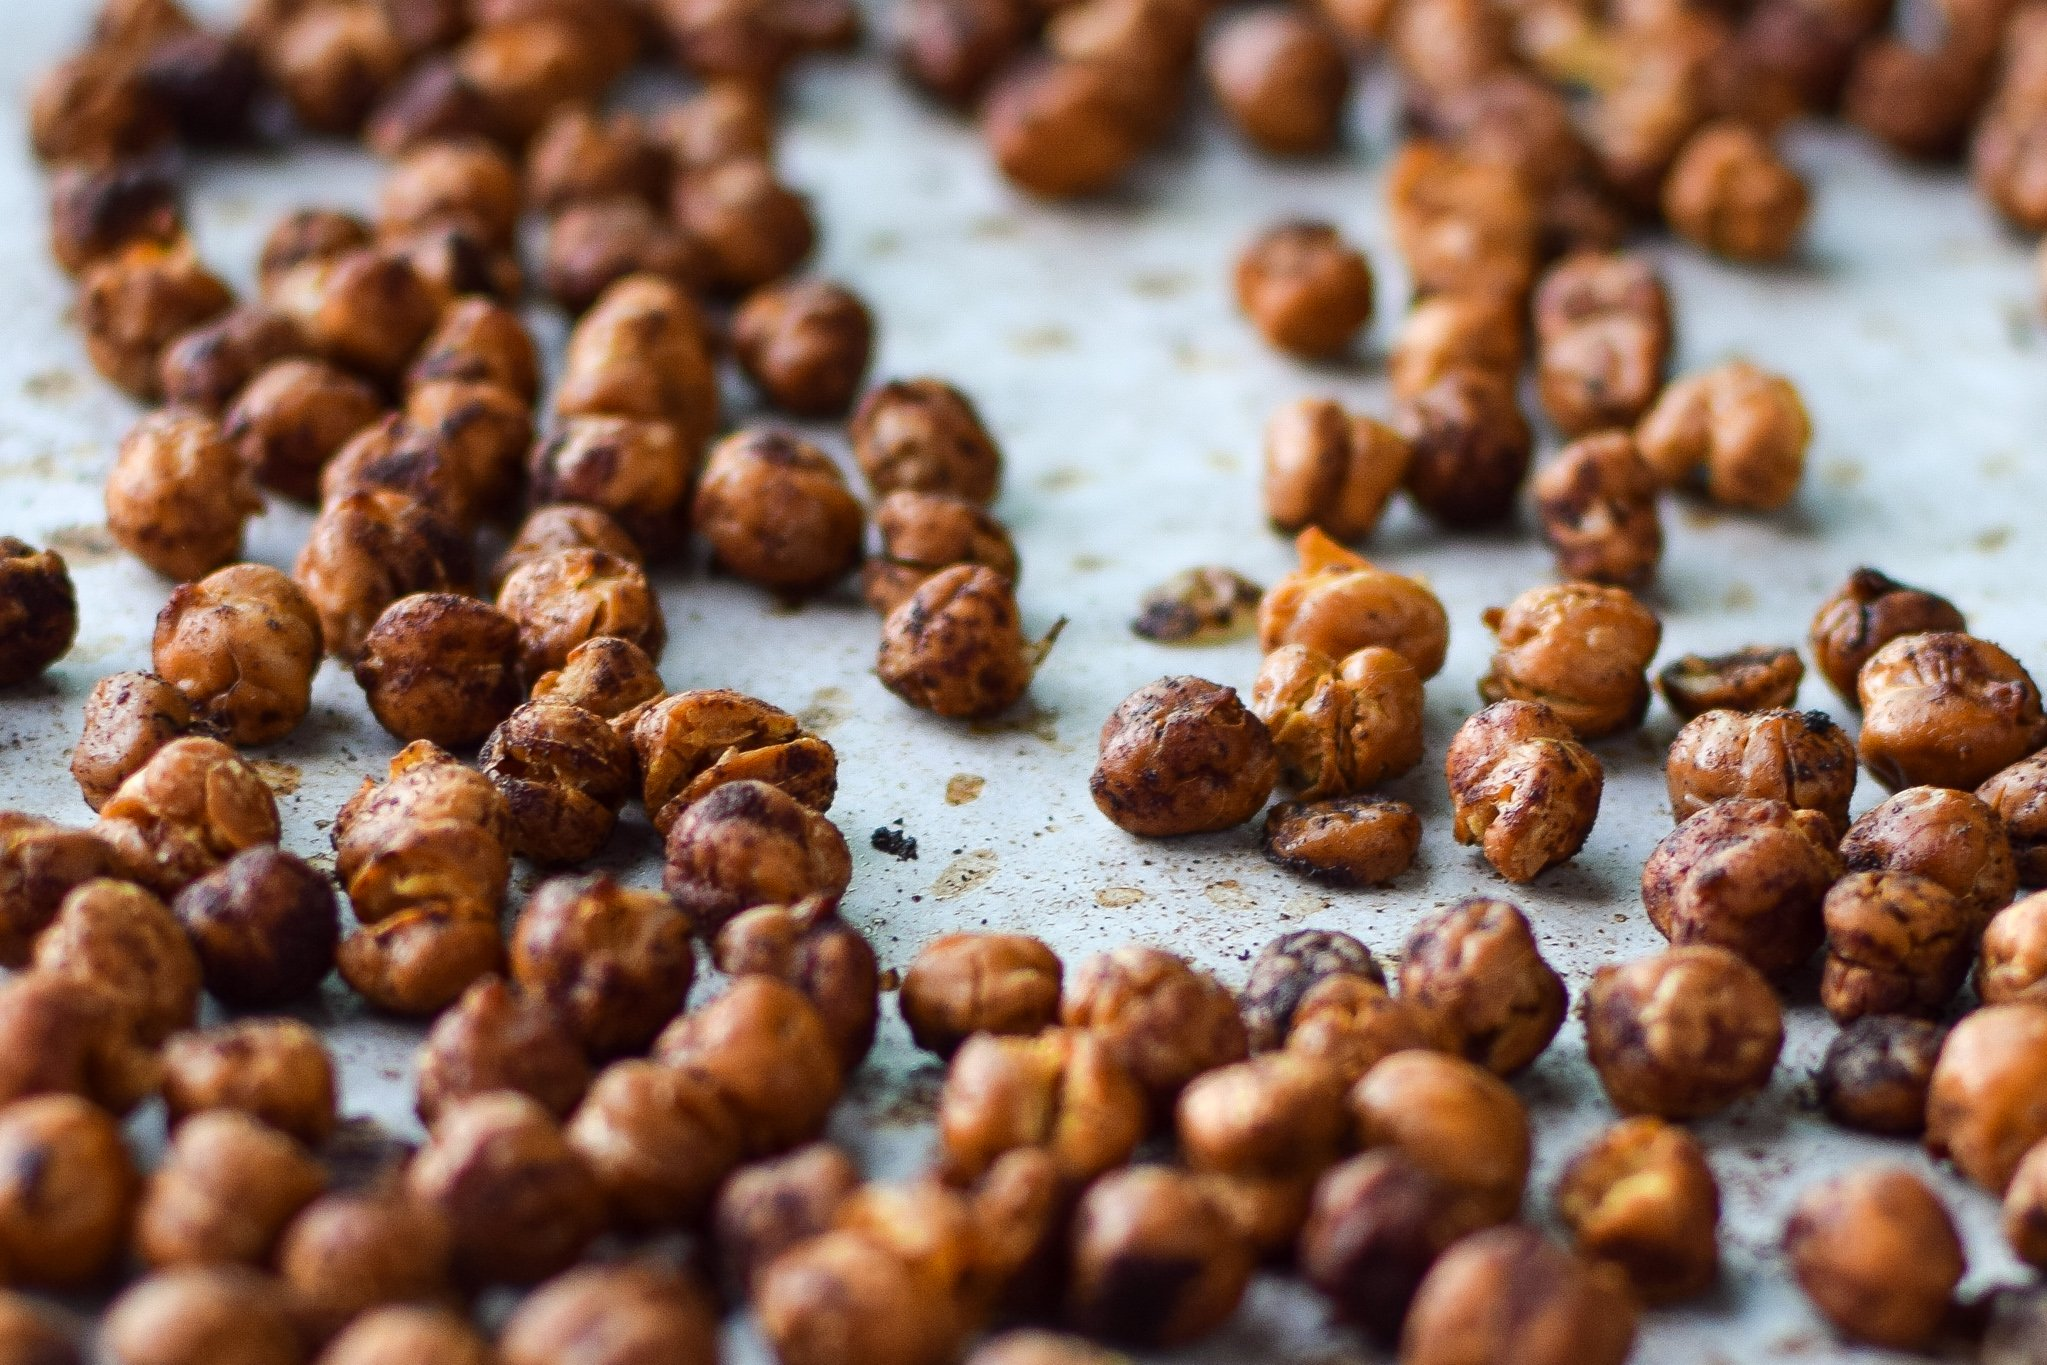 Crispy Cinnamon Roasted Chickpeas - A healthy crunch holiday treat! Four simple ingredients and your home smells amazing! - ProjectMealPlan.com